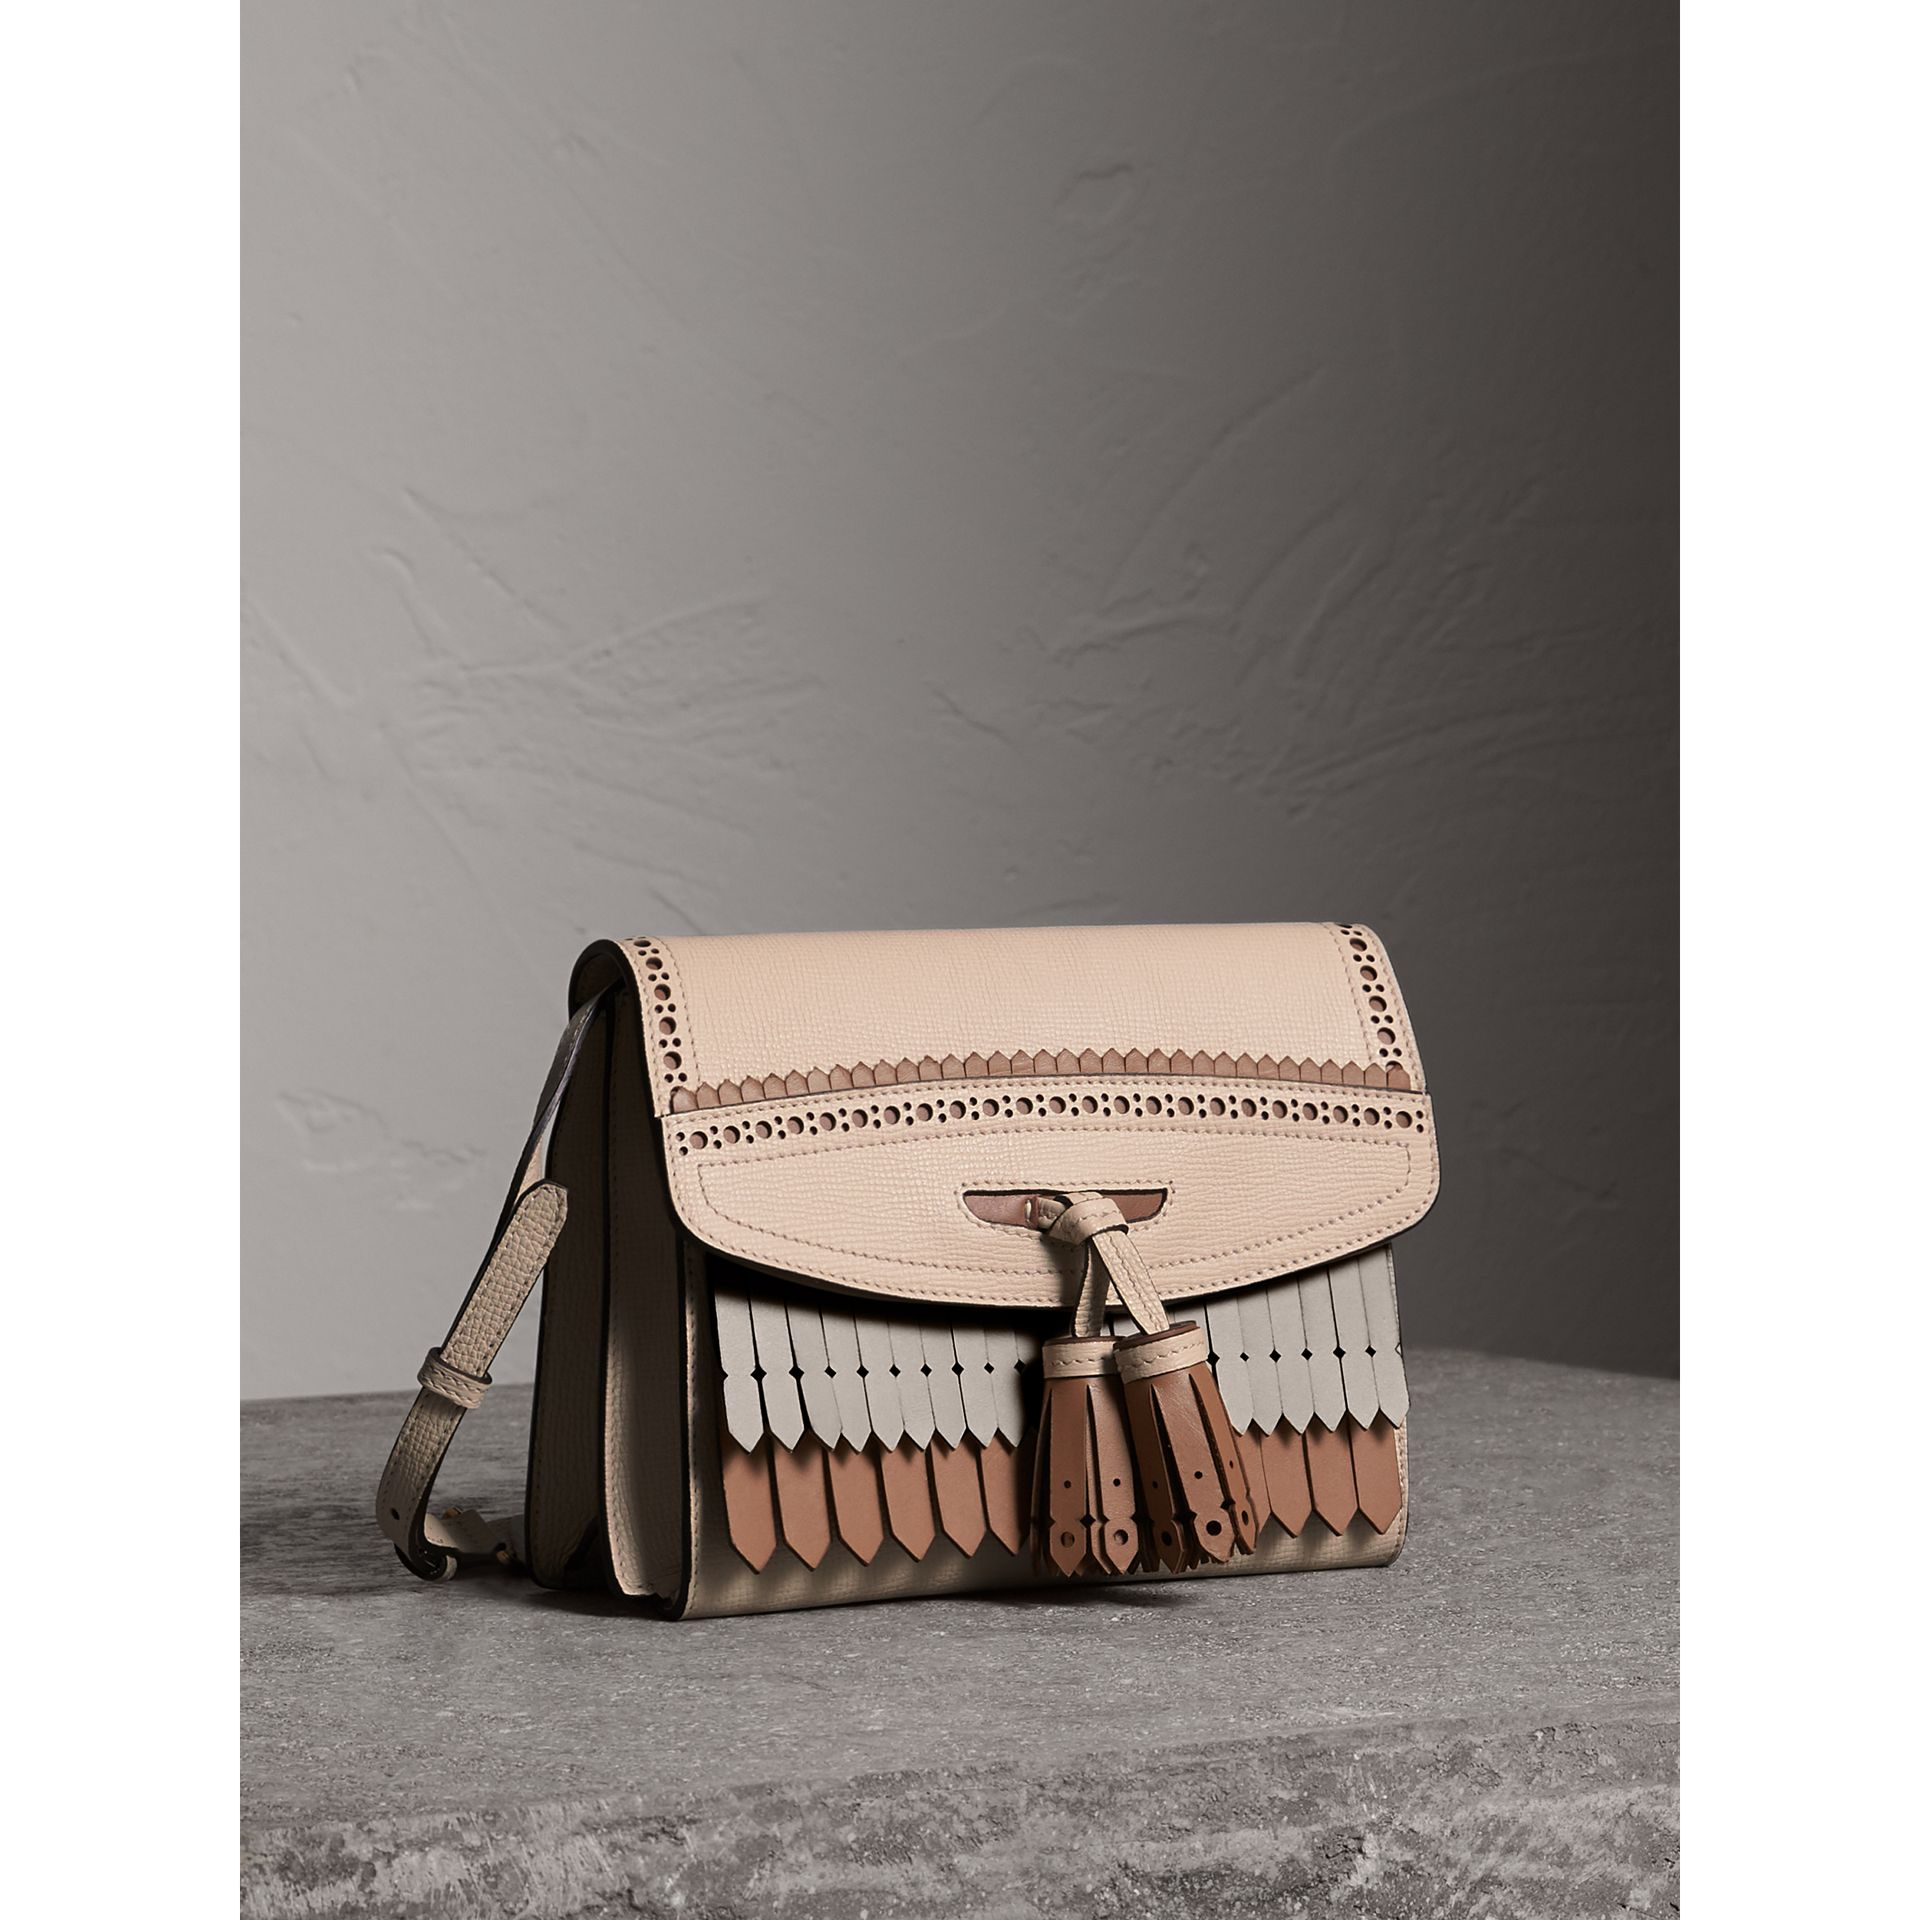 Brogue and Fringe Detail Leather Crossbody Bag in Limestone - Women | Burberry - gallery image 6